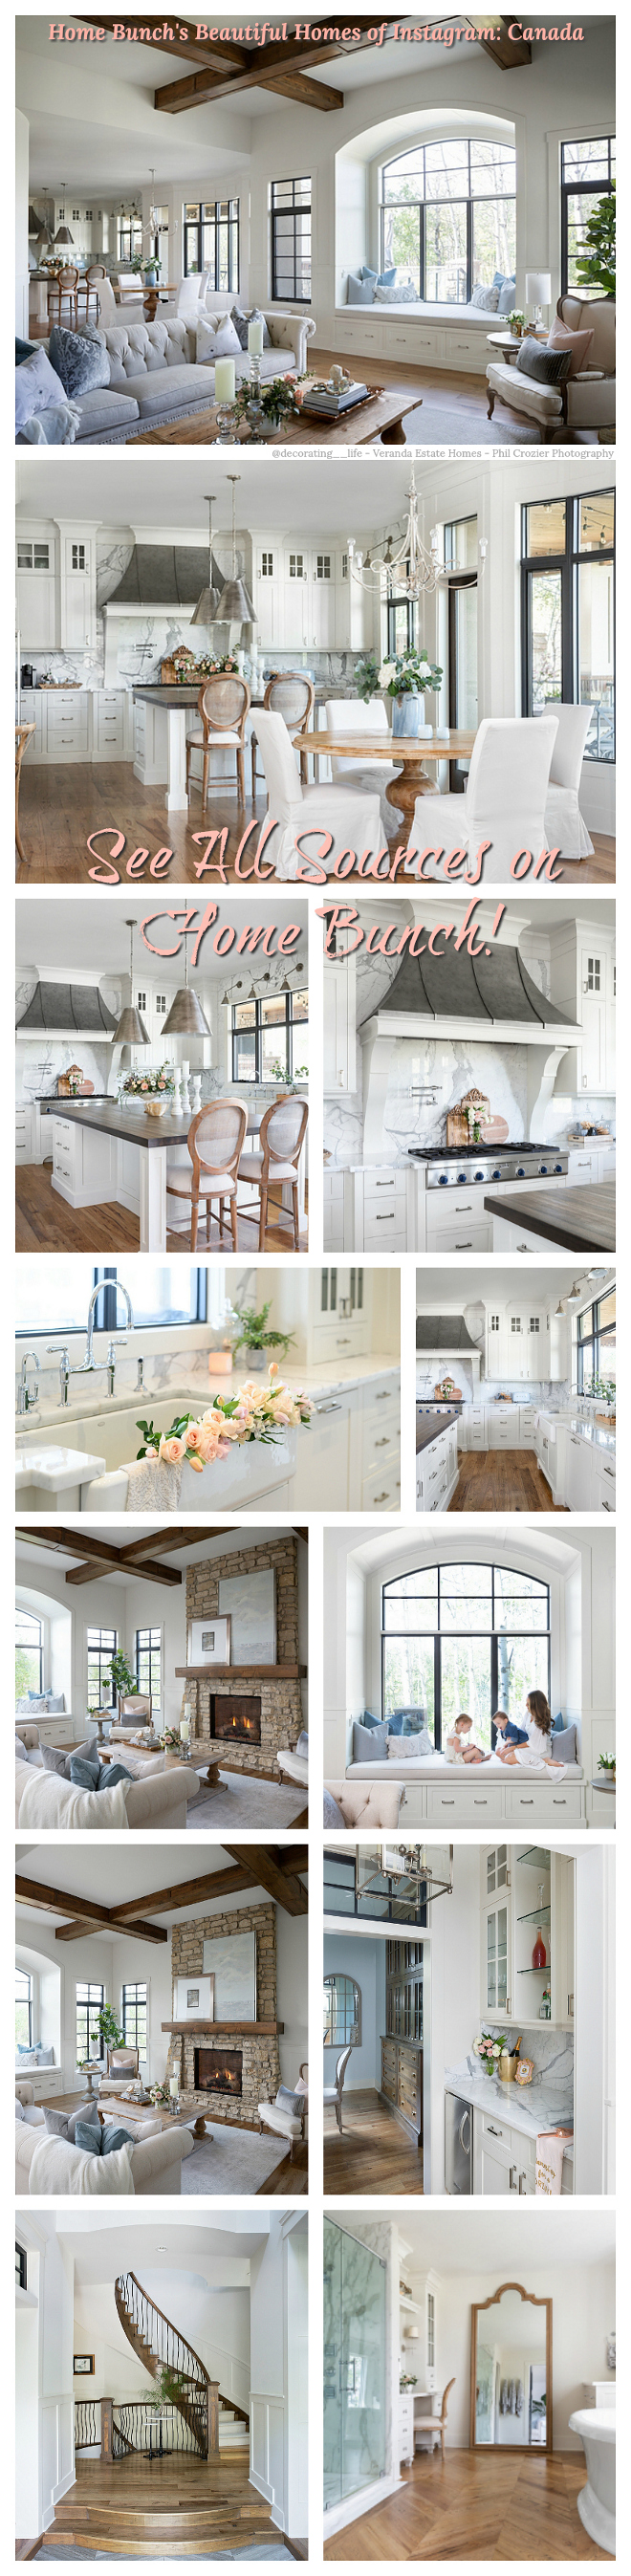 Home Bunch's Beautiful Homes of Instagram Canada Home Bunch's Beautiful Homes of Instagram Canada Home Bunch's Beautiful Homes of Instagram Canada #HomeBunch #BeautifulHomesofInstagram #Canada